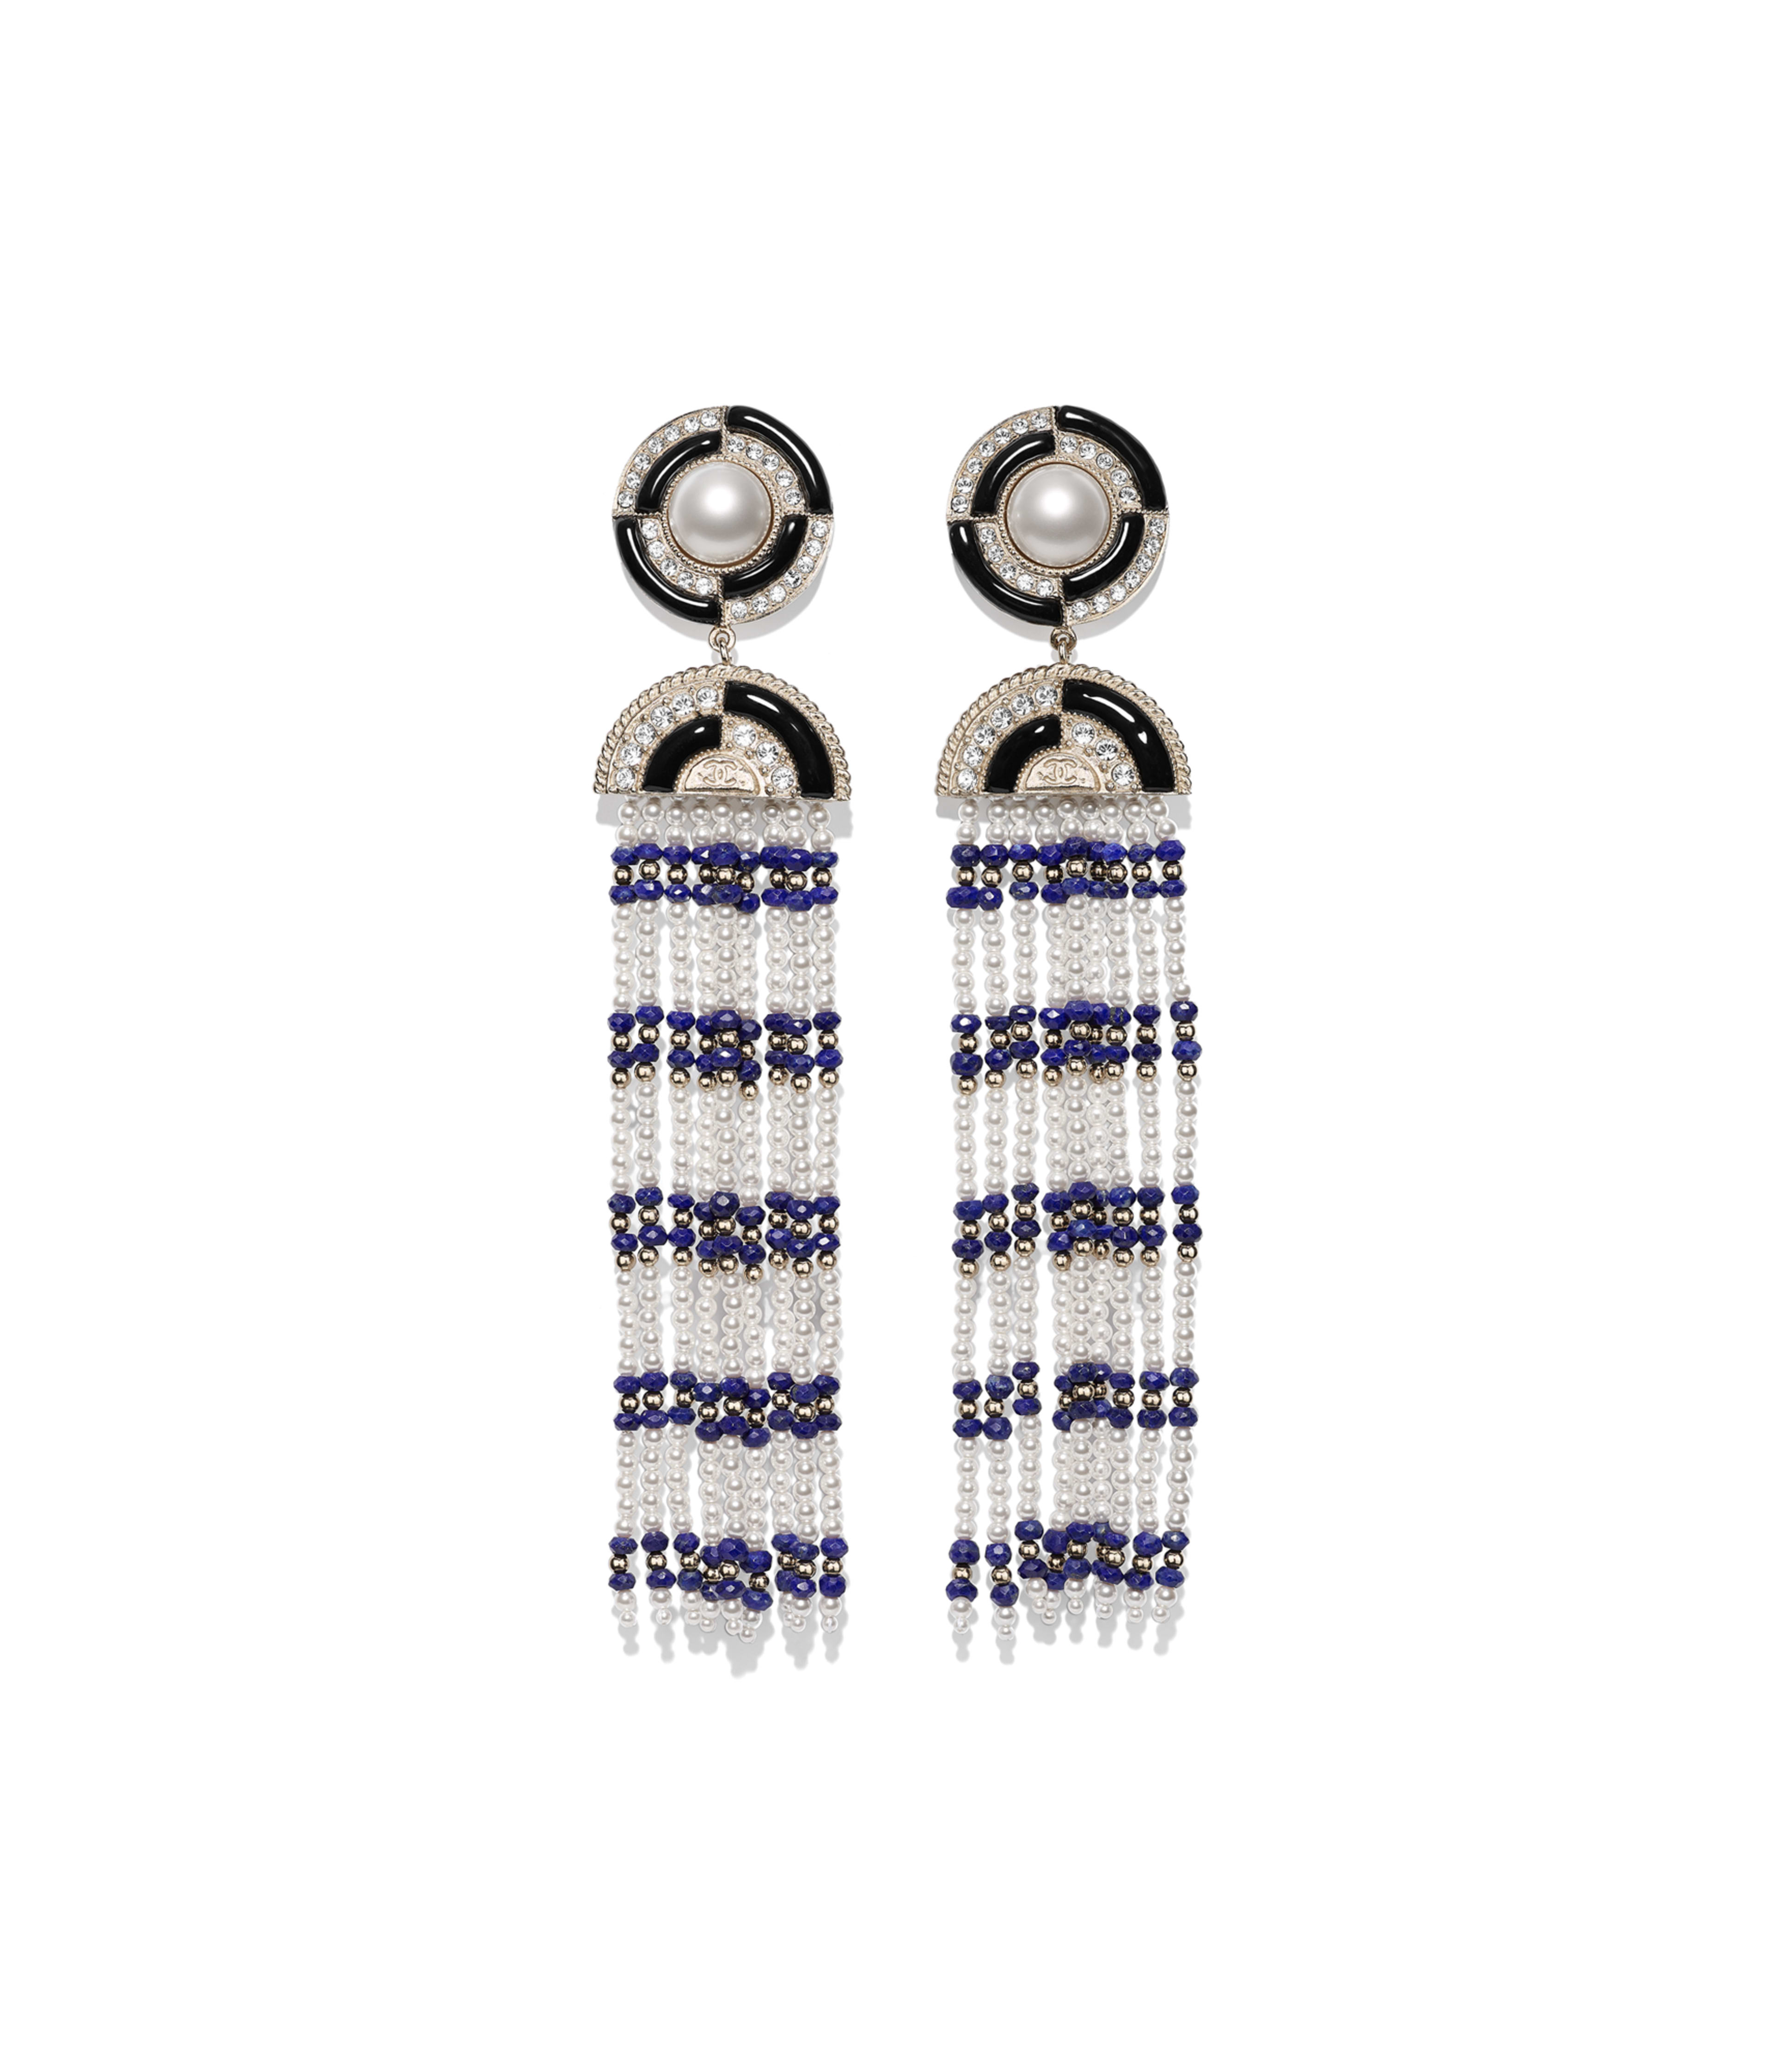 f27c83a8f90e Clip-on Earrings Metal, Natural Stones, Glass Pearls, Strass & Resin, Gold,  Black, Blue, Pearly White & Crystal Ref. AB1972Y47785Z9213